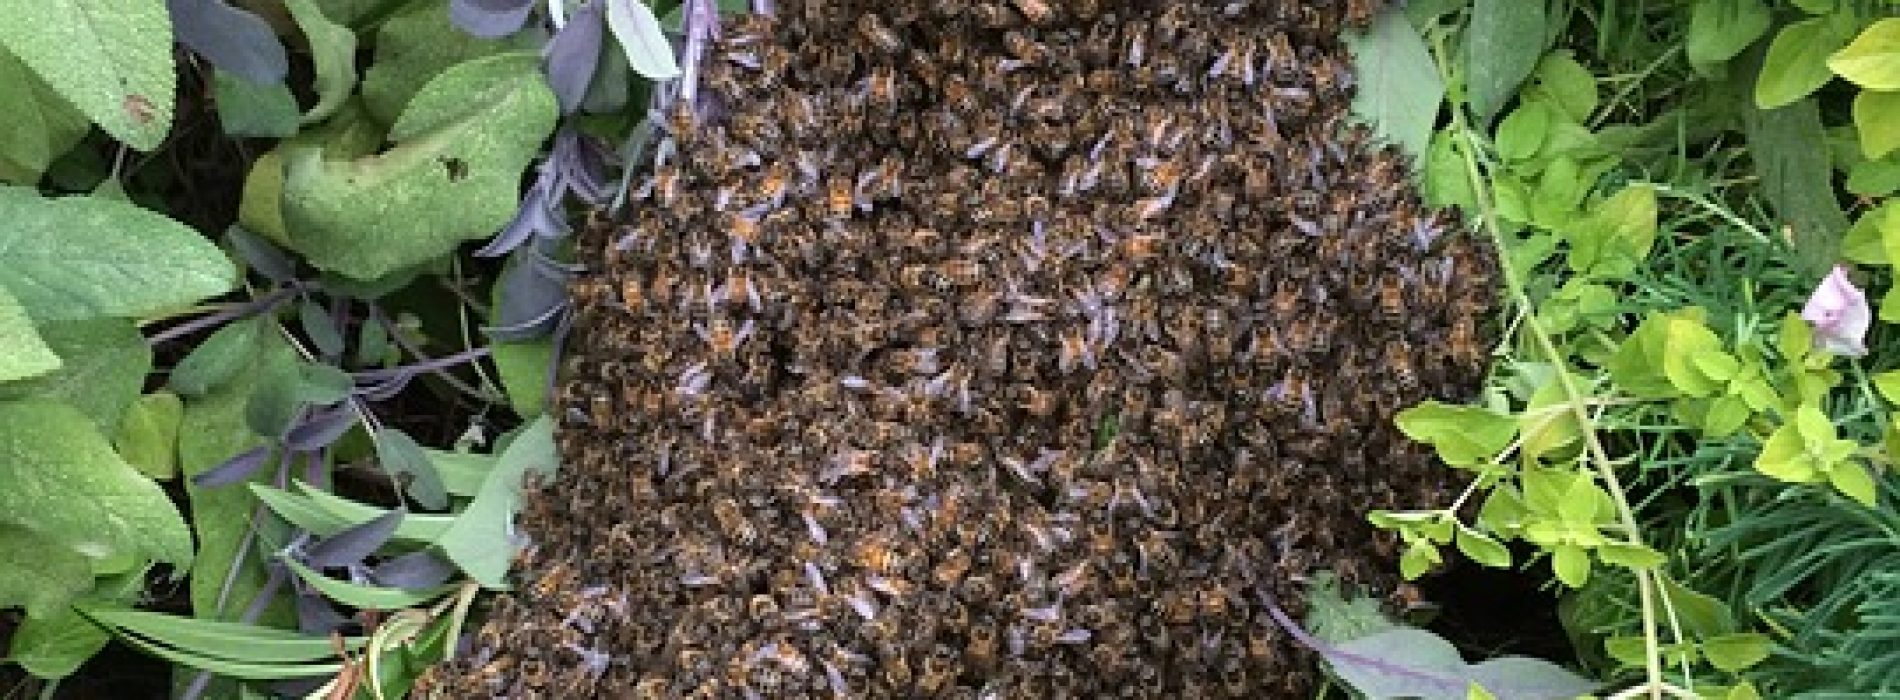 Is There a Wild Beehive Near You? Then Scientists Need to Know